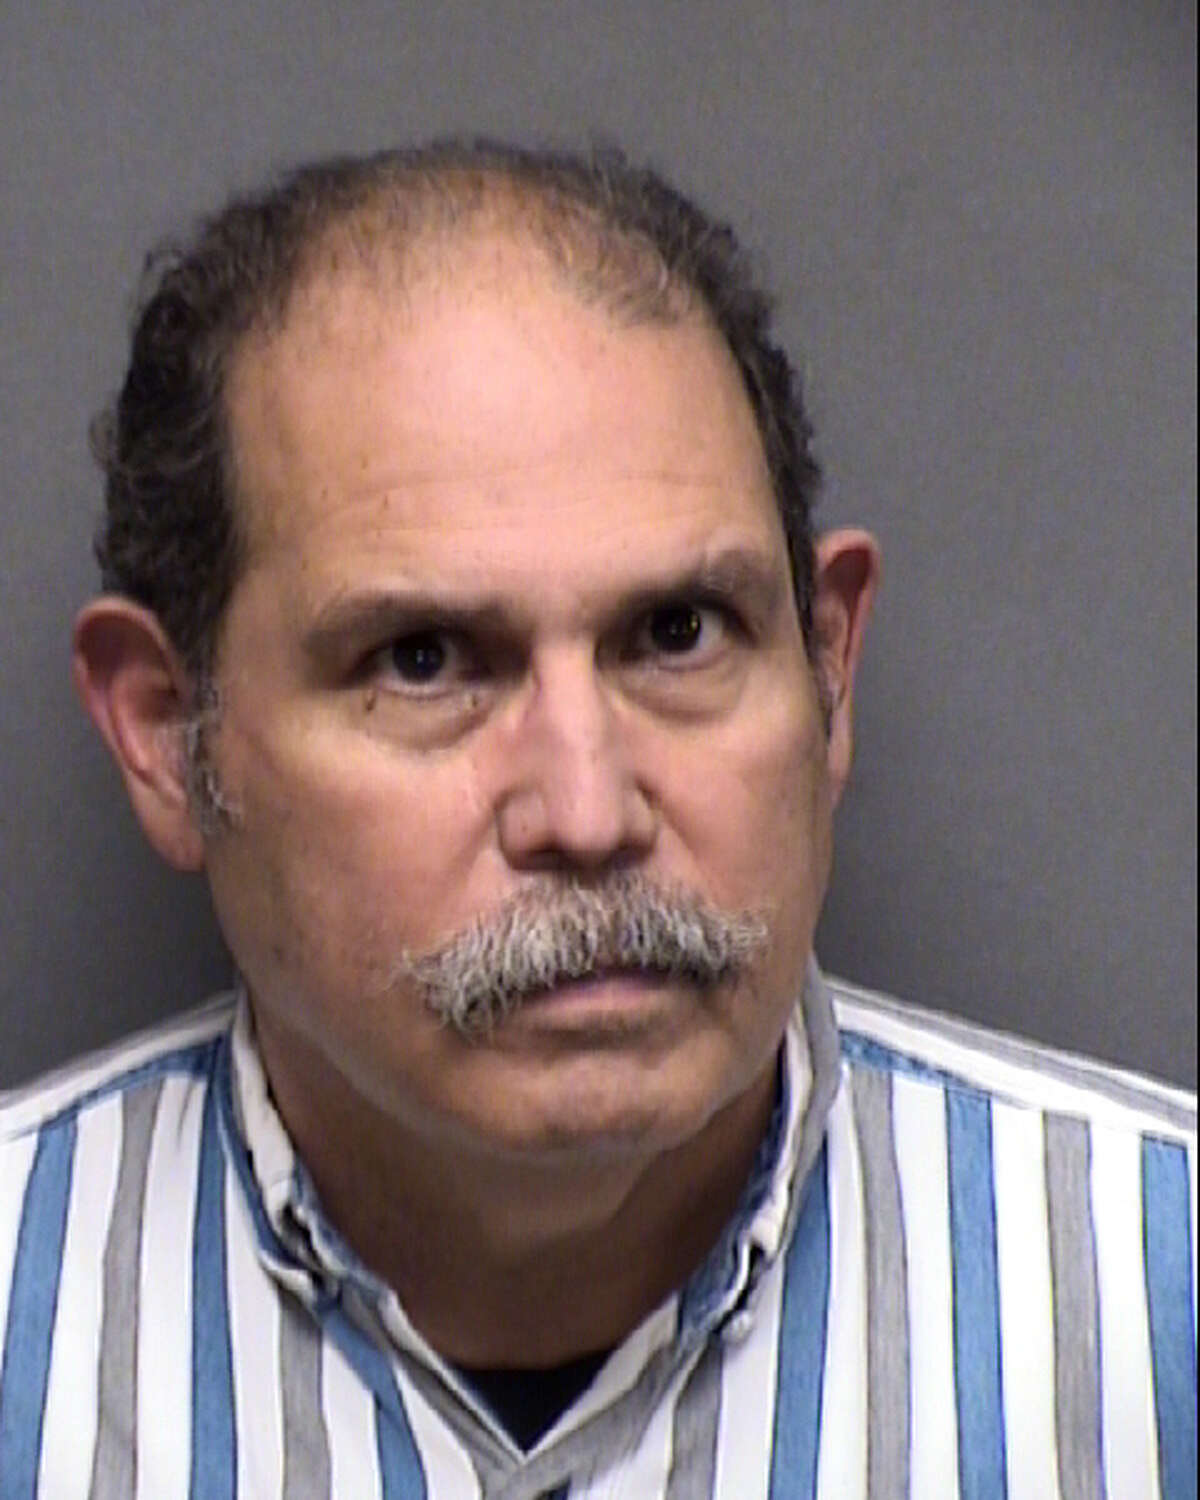 Former Bexar County deputy Danilo Molina, 68, was charged with tampering with government records after allegedly having inmates perform his cell checks, but putting in his logs that he was conducting them.